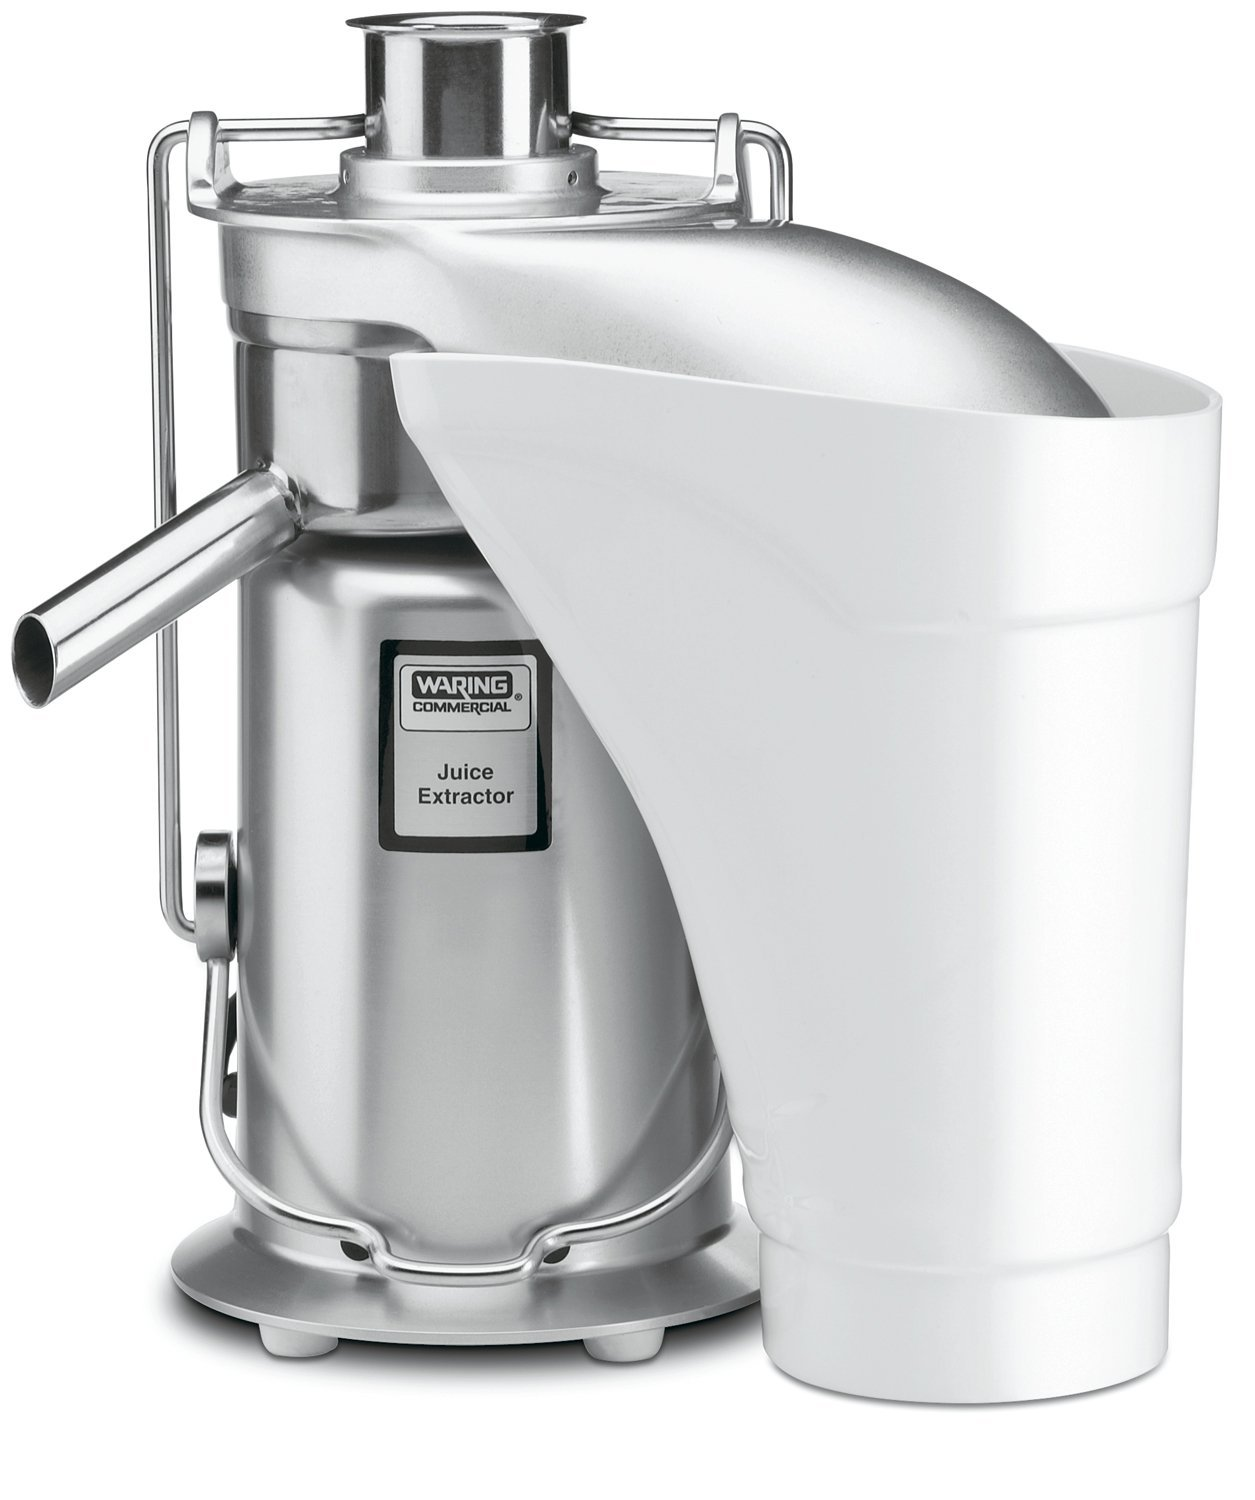 Waring Commercial JE2000 Heavy duty Stainless steel juice extractor